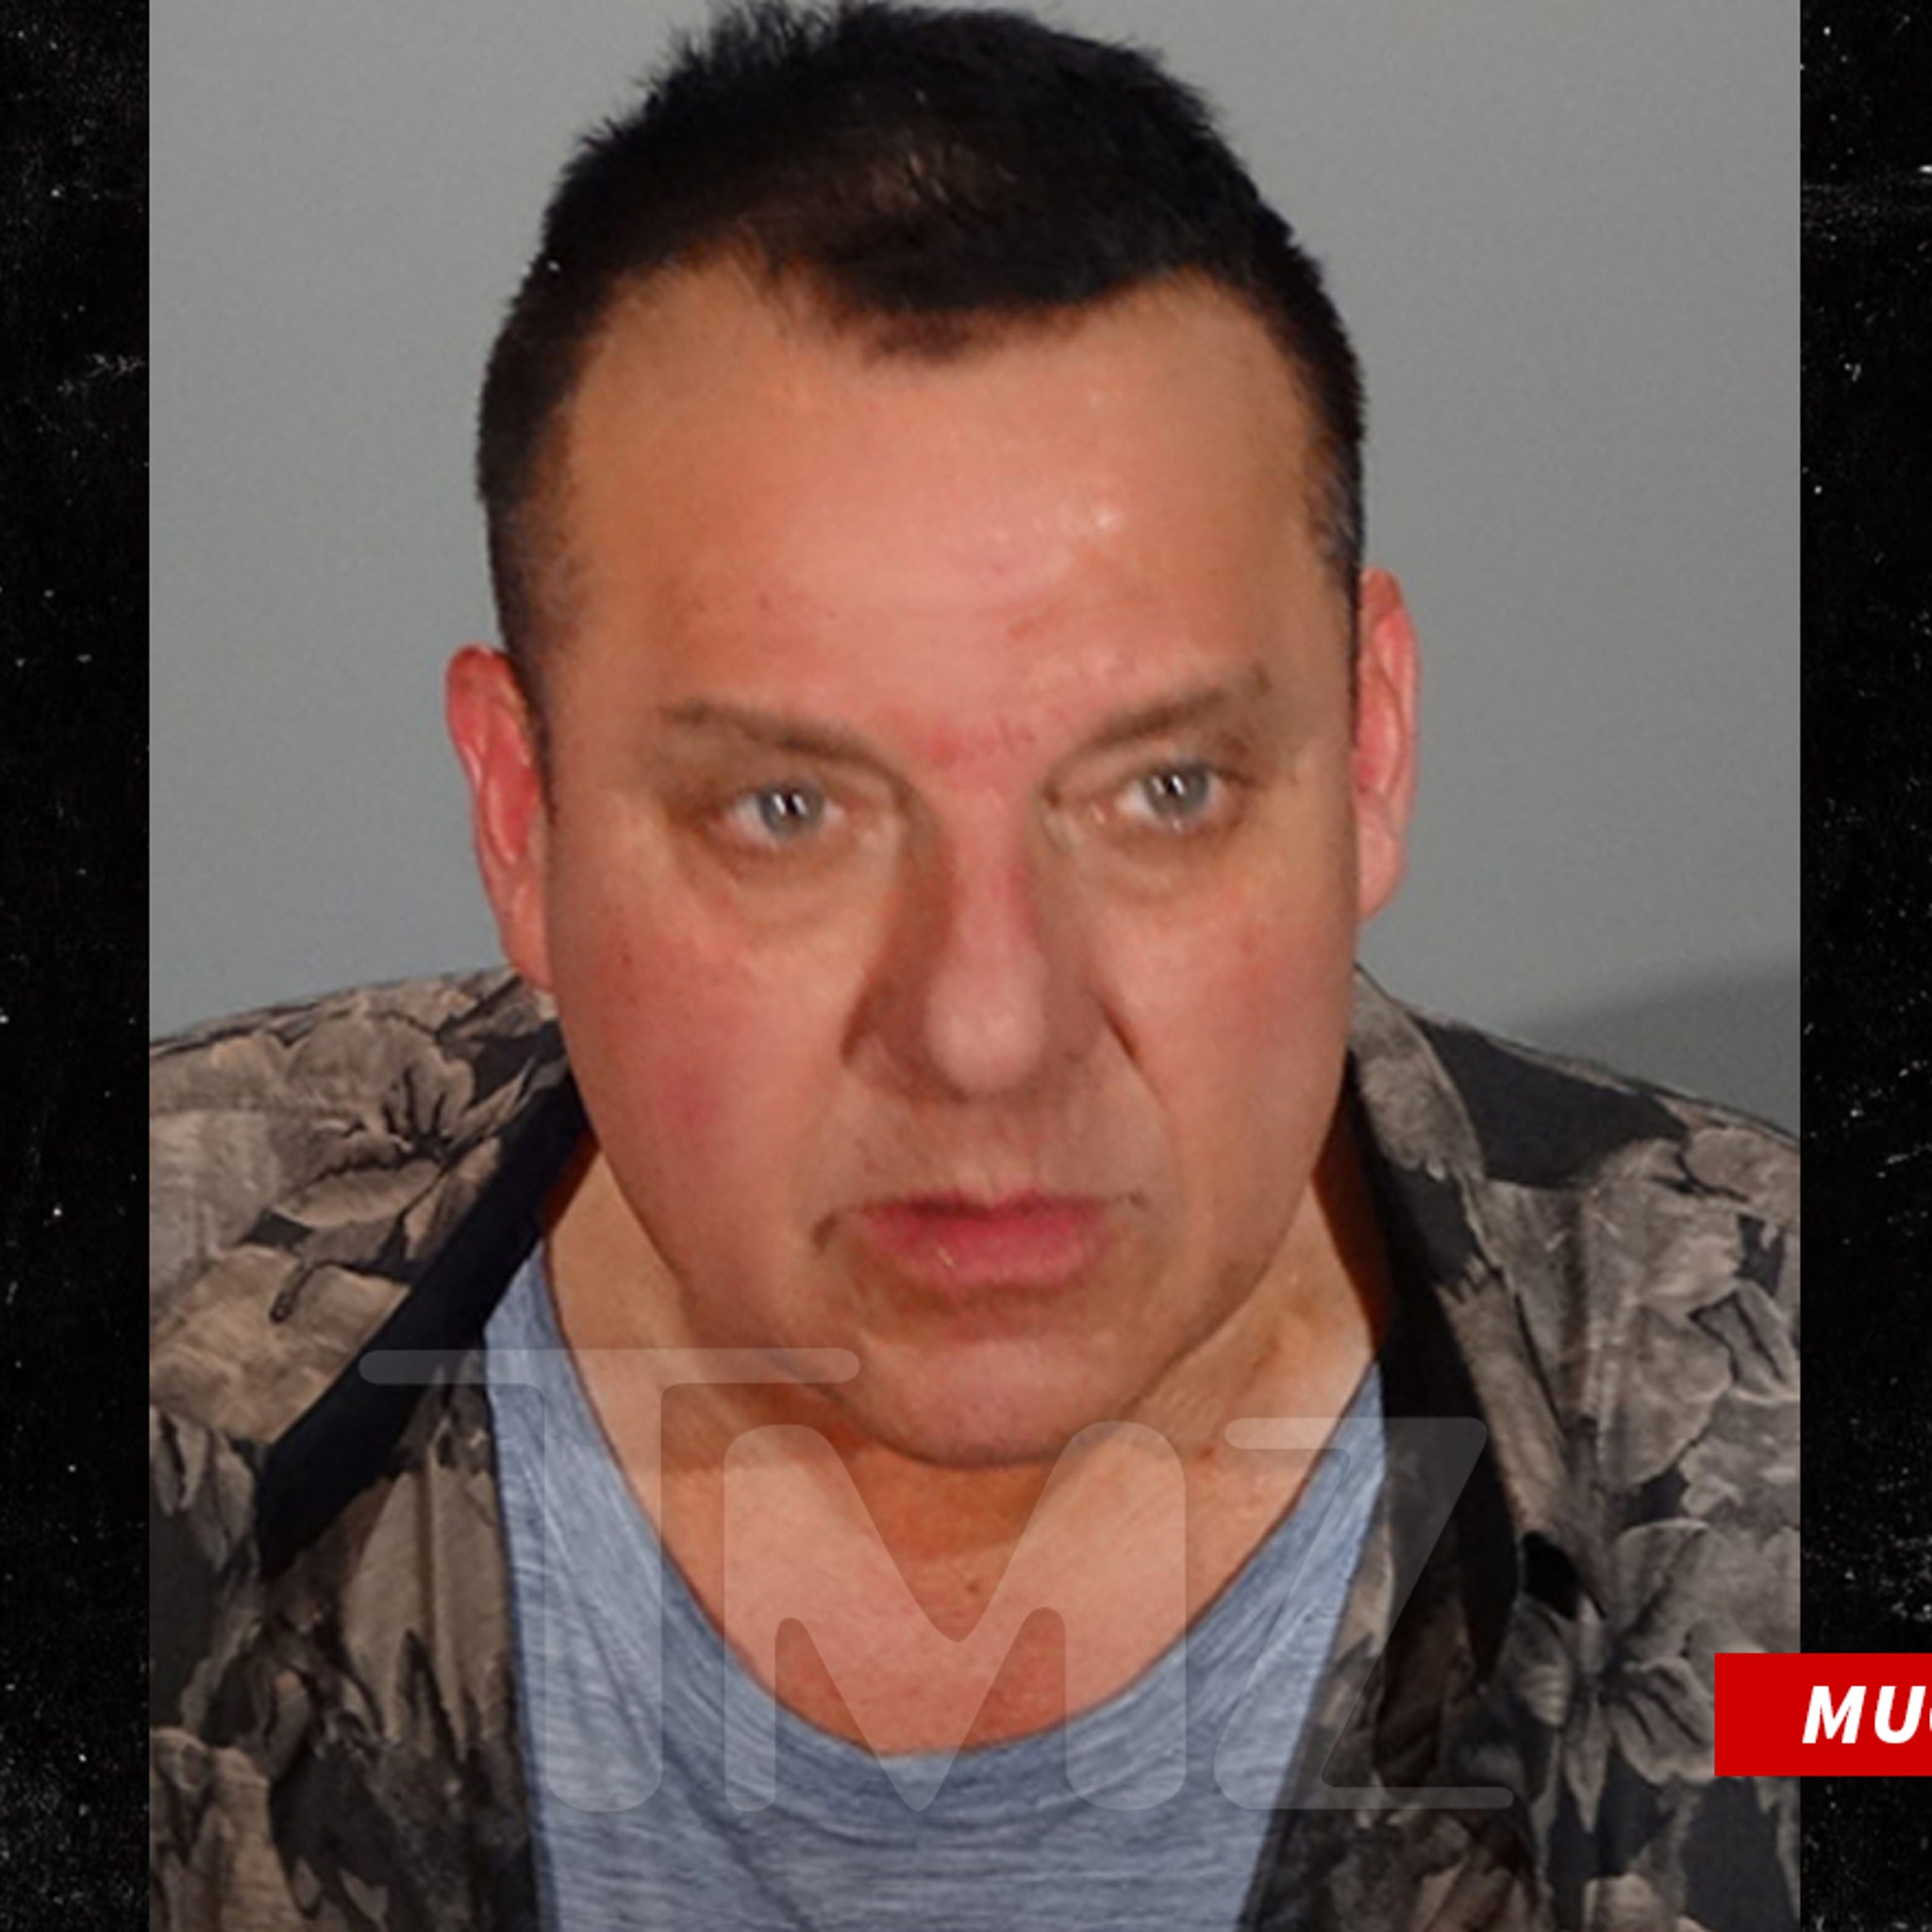 Tom Sizemore Busted for DUI and Drug Possession